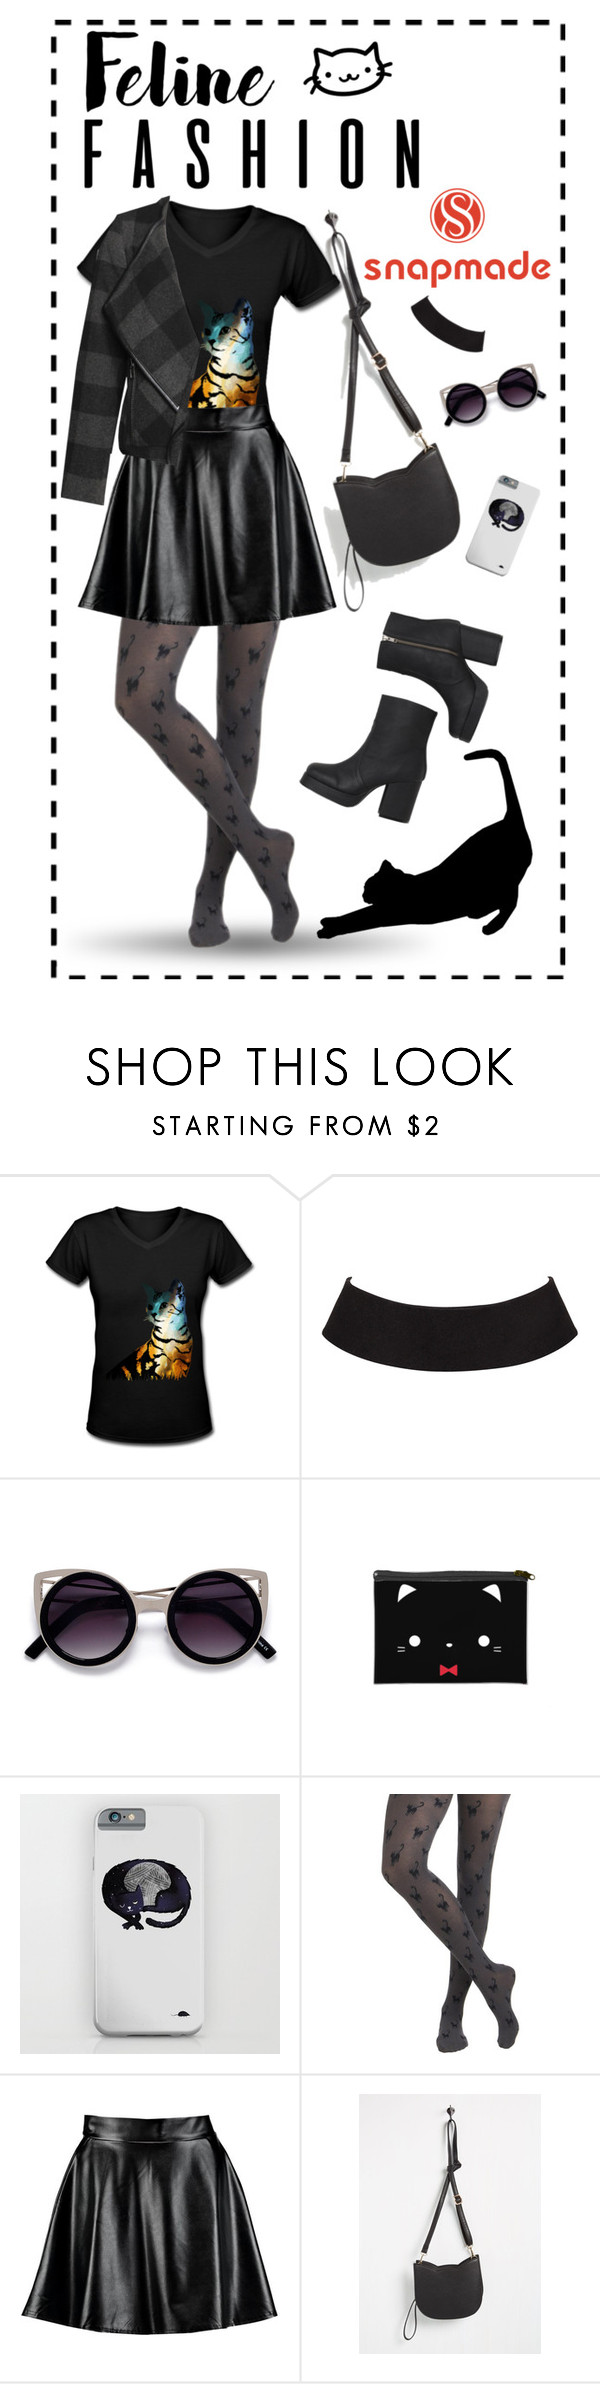 """""""Feline fashion"""" by iceasily ❤ liked on Polyvore featuring Boohoo and Devoted"""